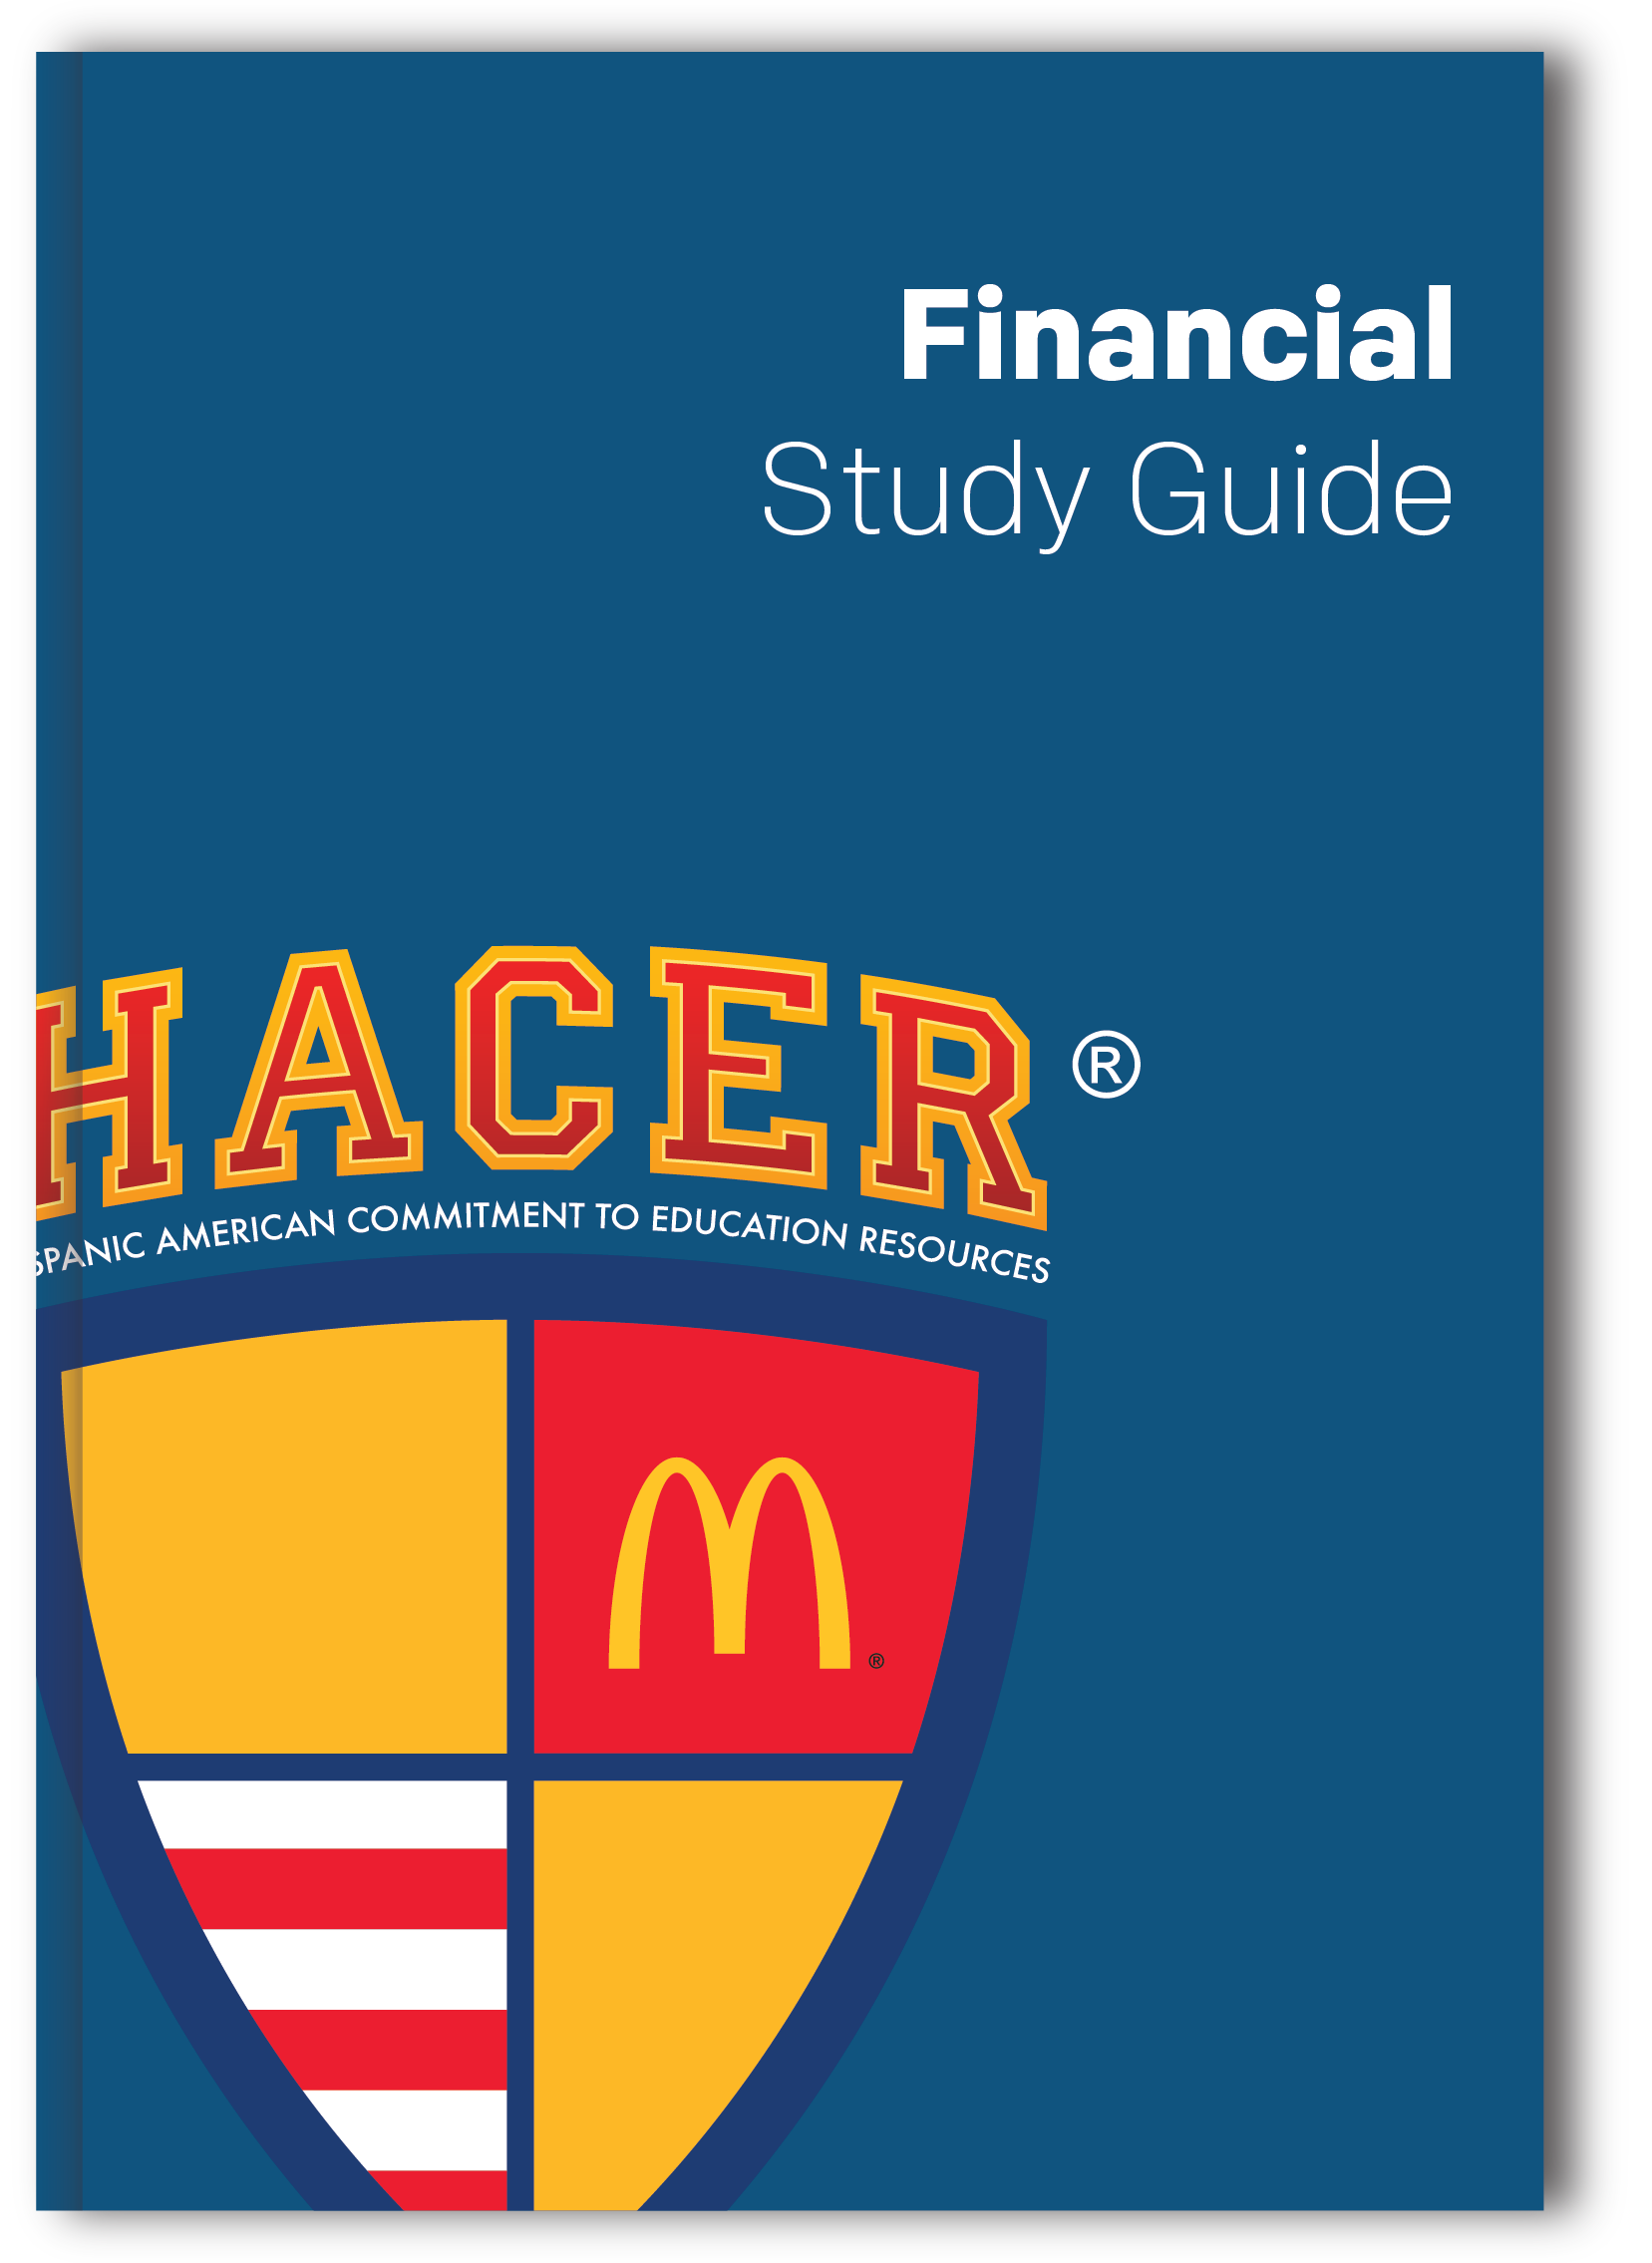 College Scholarships & Funding  - Download the complete HACER® Financial Study Guide.Individual resources:How much does college cost?Budget for CollegeHow to apply for Financial AidFAFSA ChecklistWhat to know about scholarshipsScholarships Do's and Don'tsPlus, get even more scholarship tips and resources through our partners at USHLI and CoolSpeak.